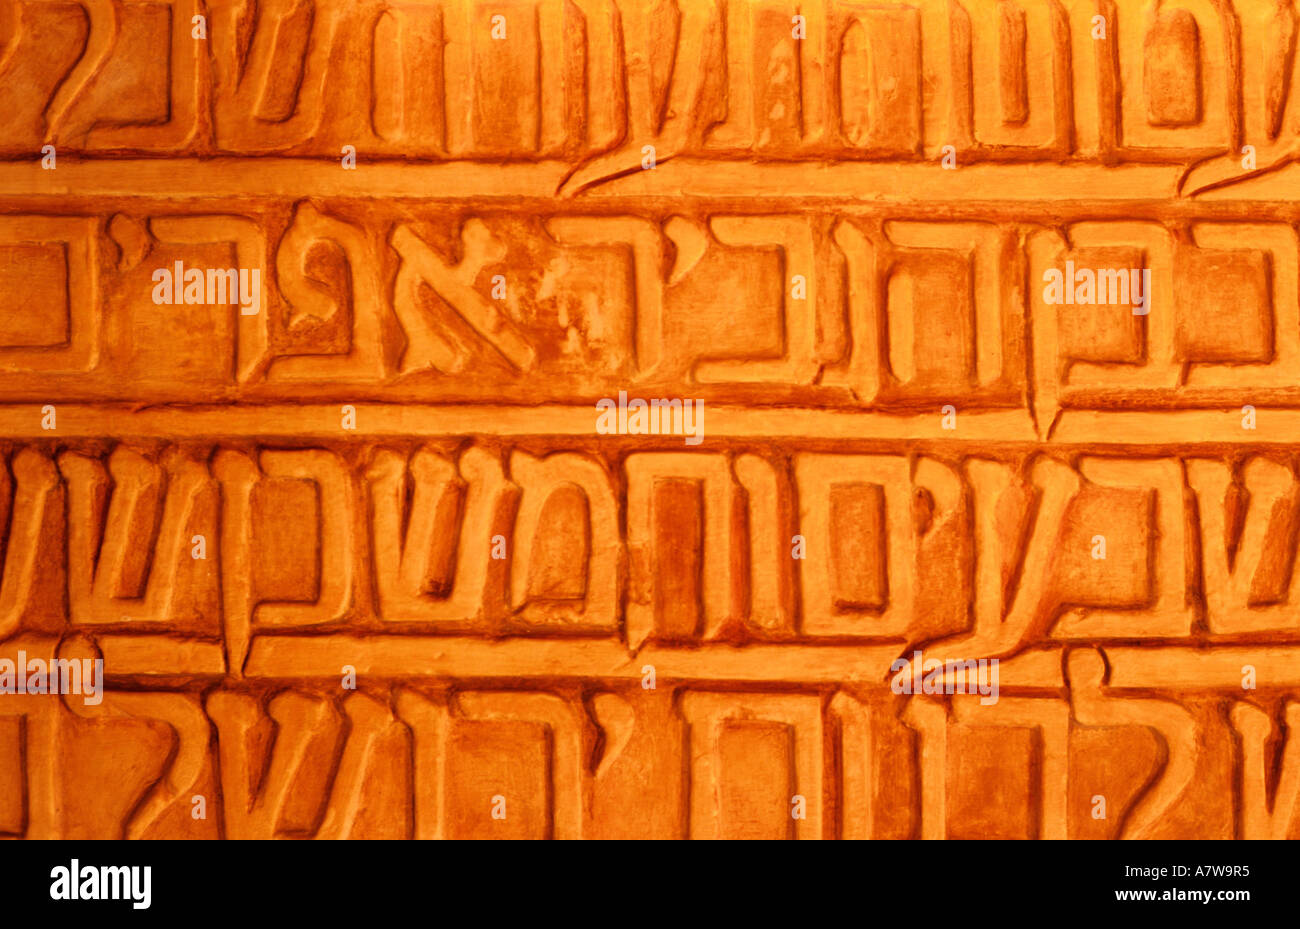 Spain, Andalusia, Cordoba, Hebrew glyph of the synagogue - Stock Image